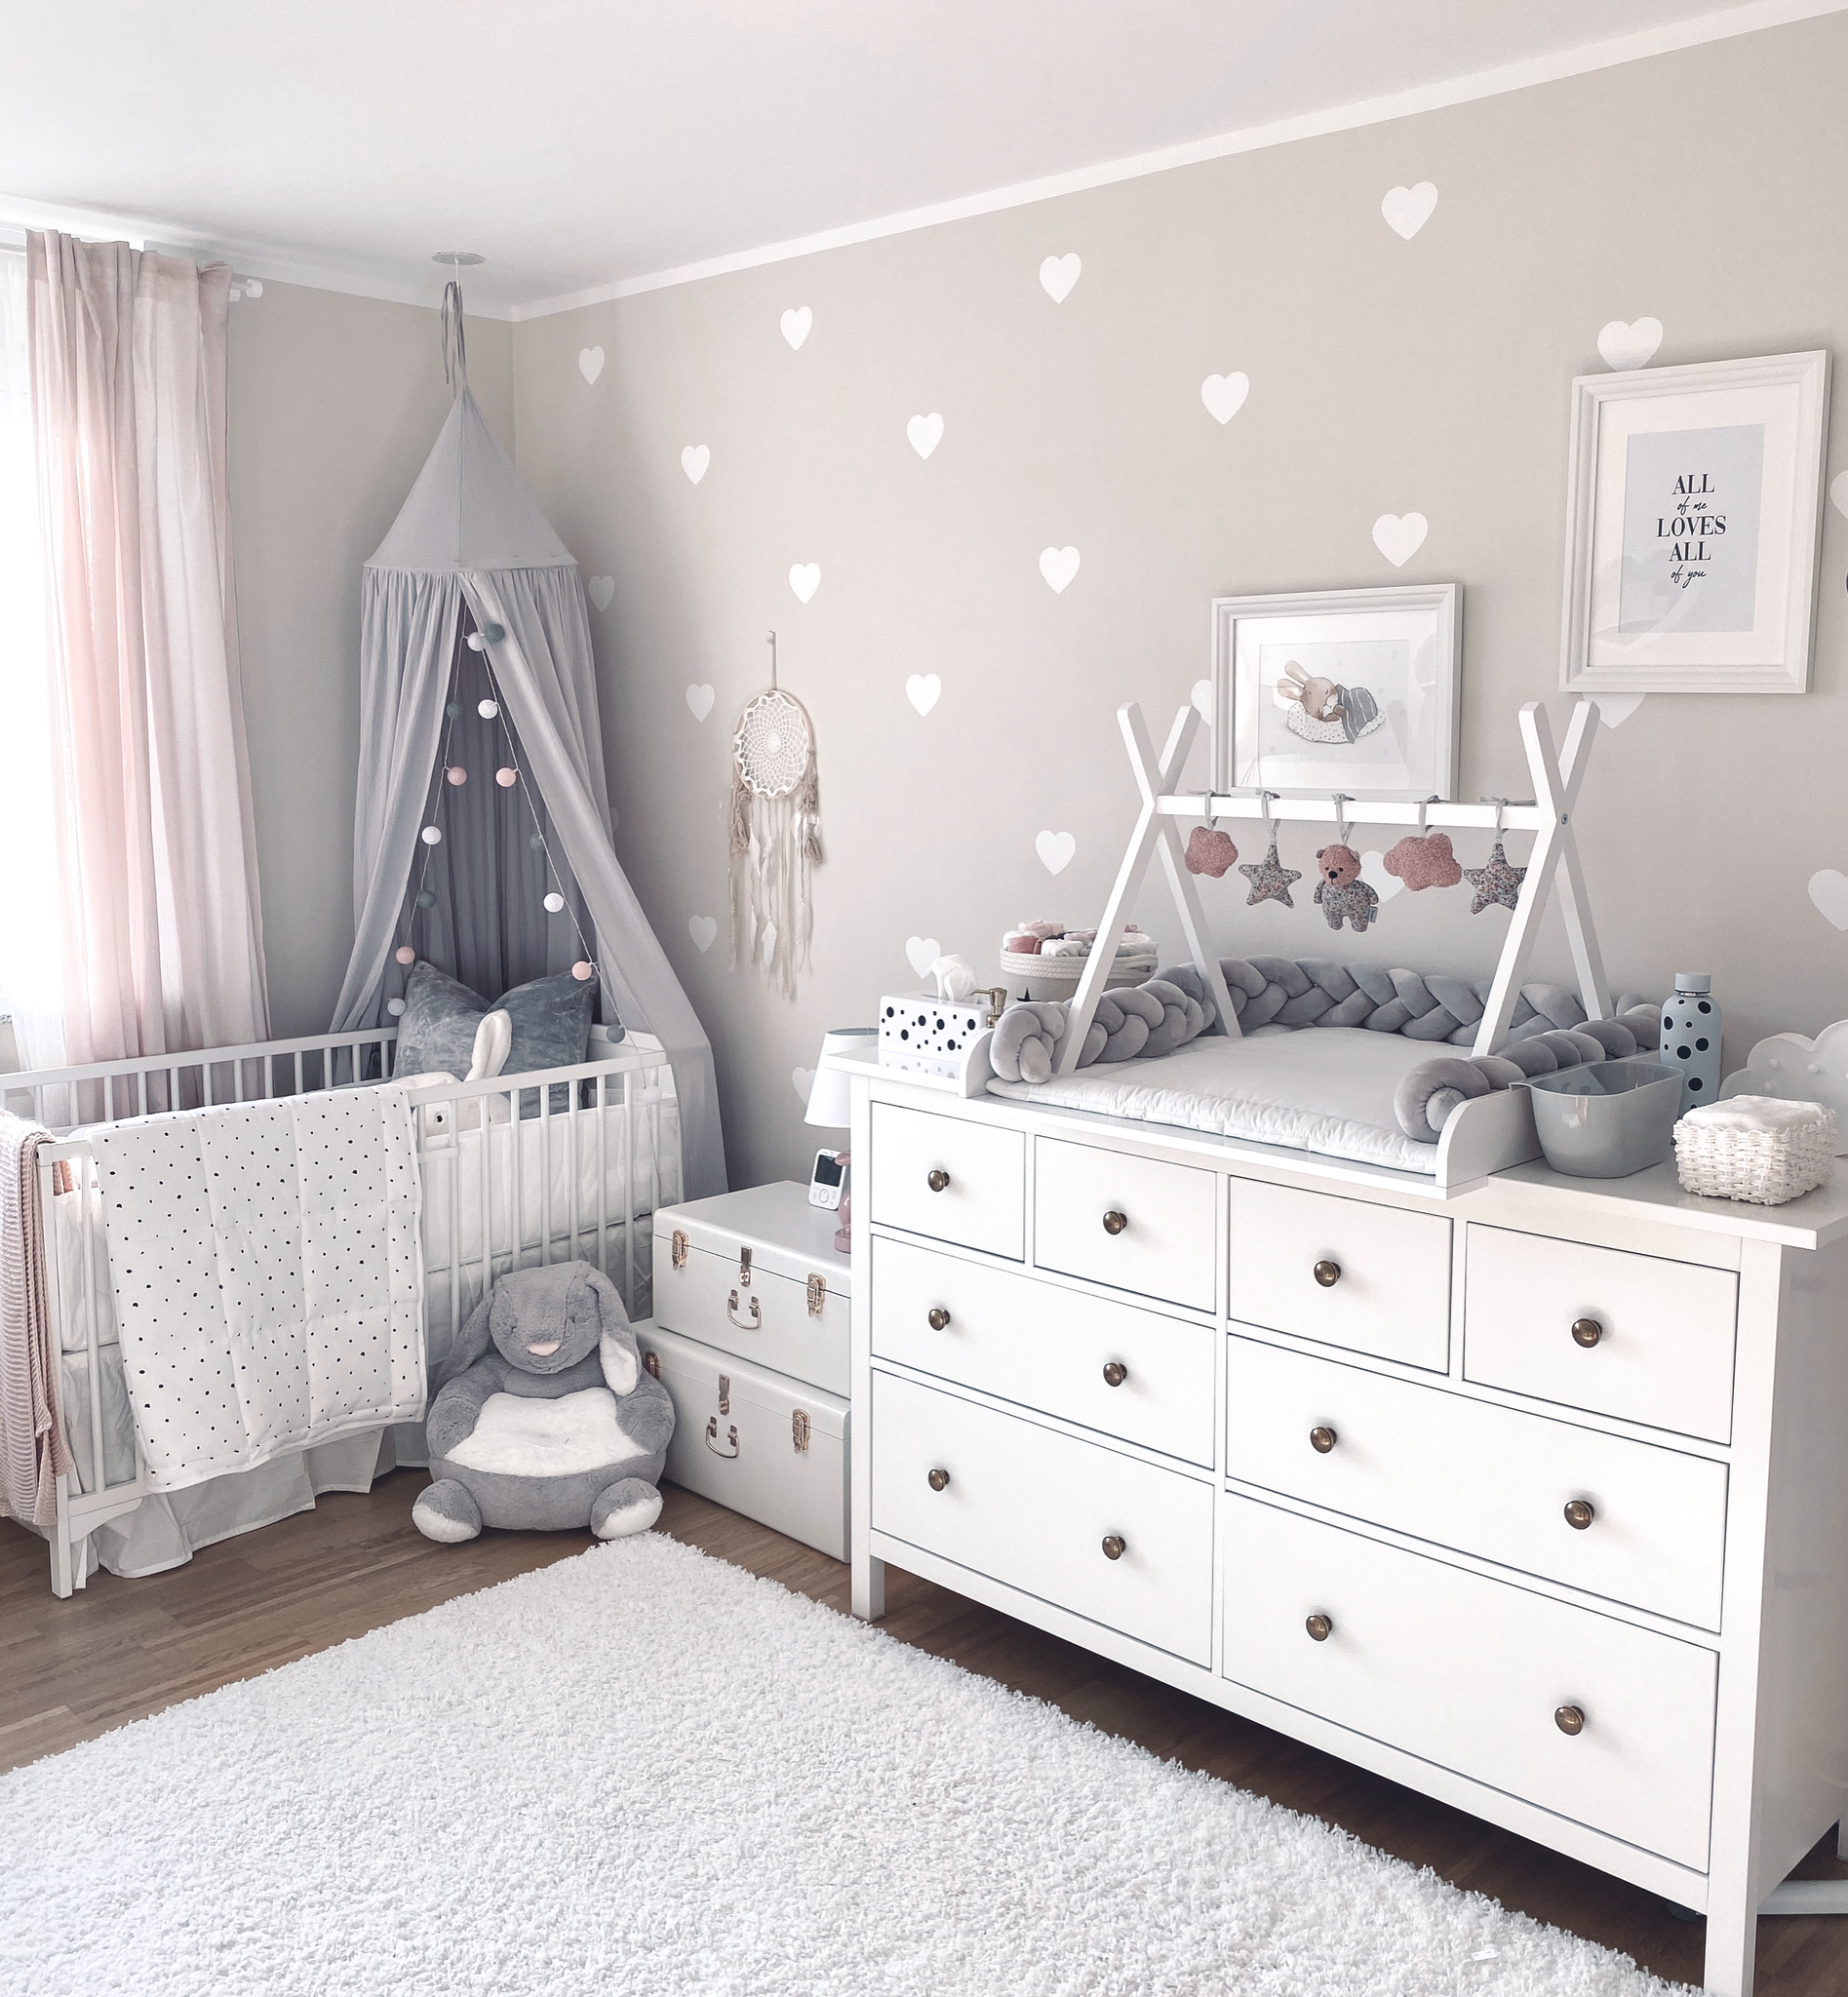 Baby room inspo decoration#baby #decoration #inspo #room in 27